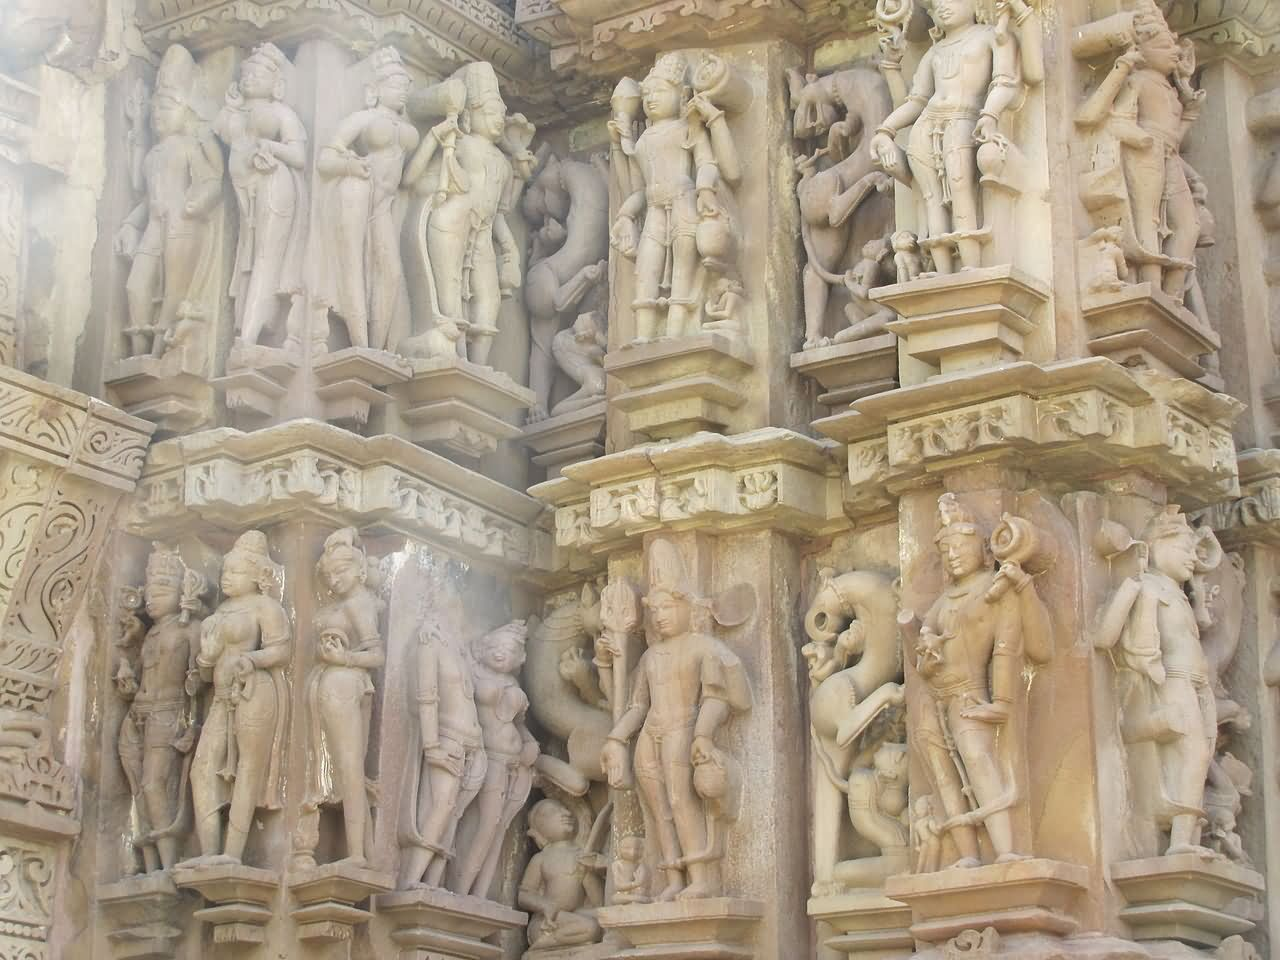 Wall carving of duladeo temple at khajuraho findmessages